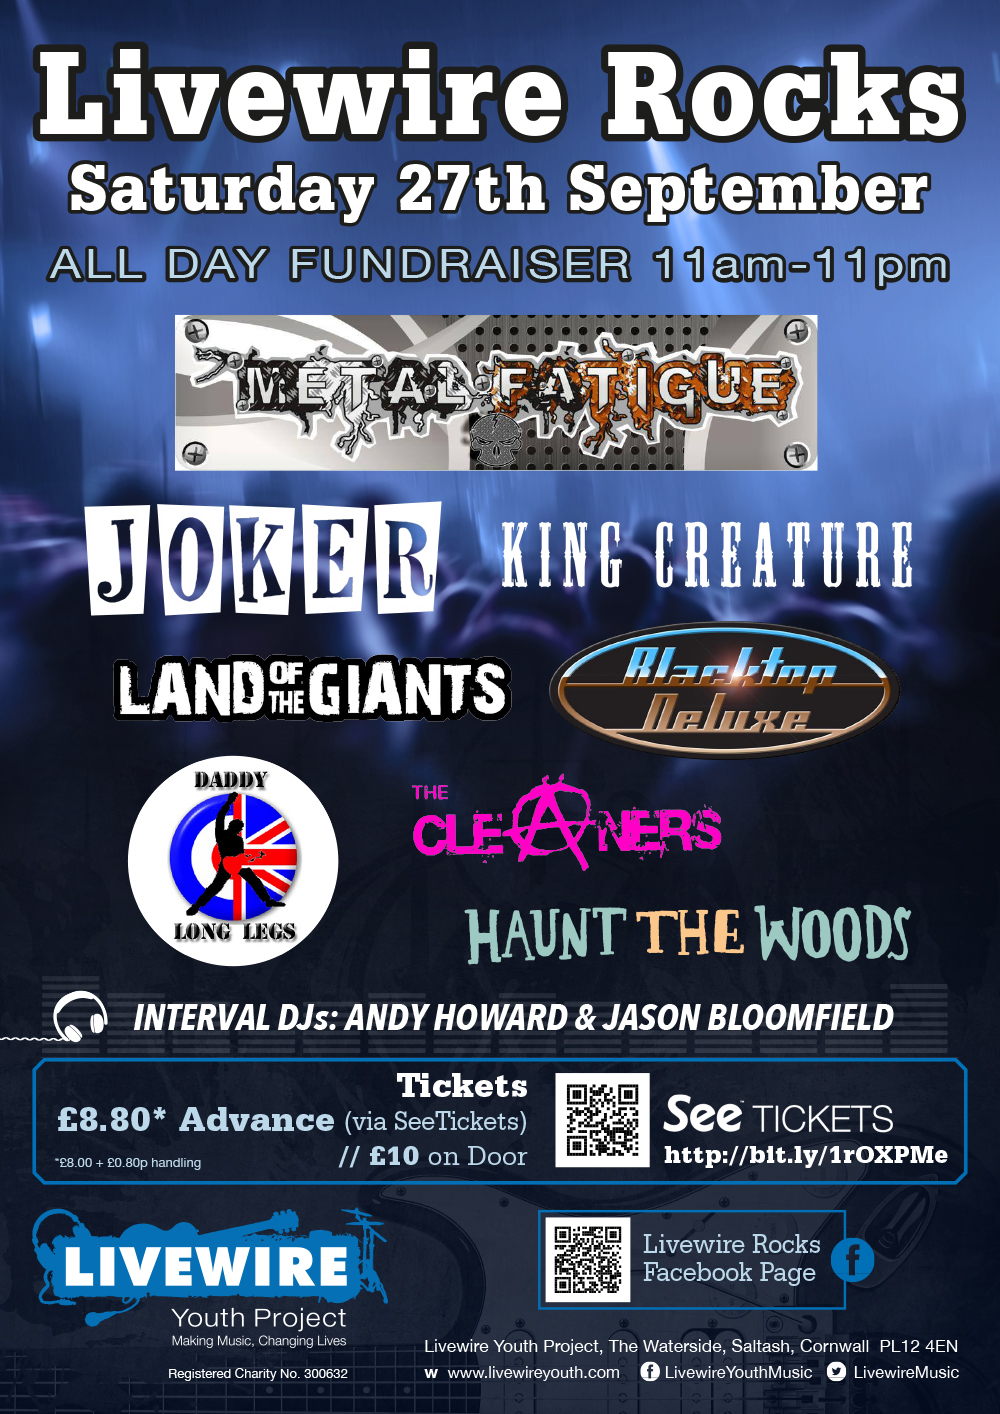 Livewire Rocks All Day Fundraiser 27/09/14